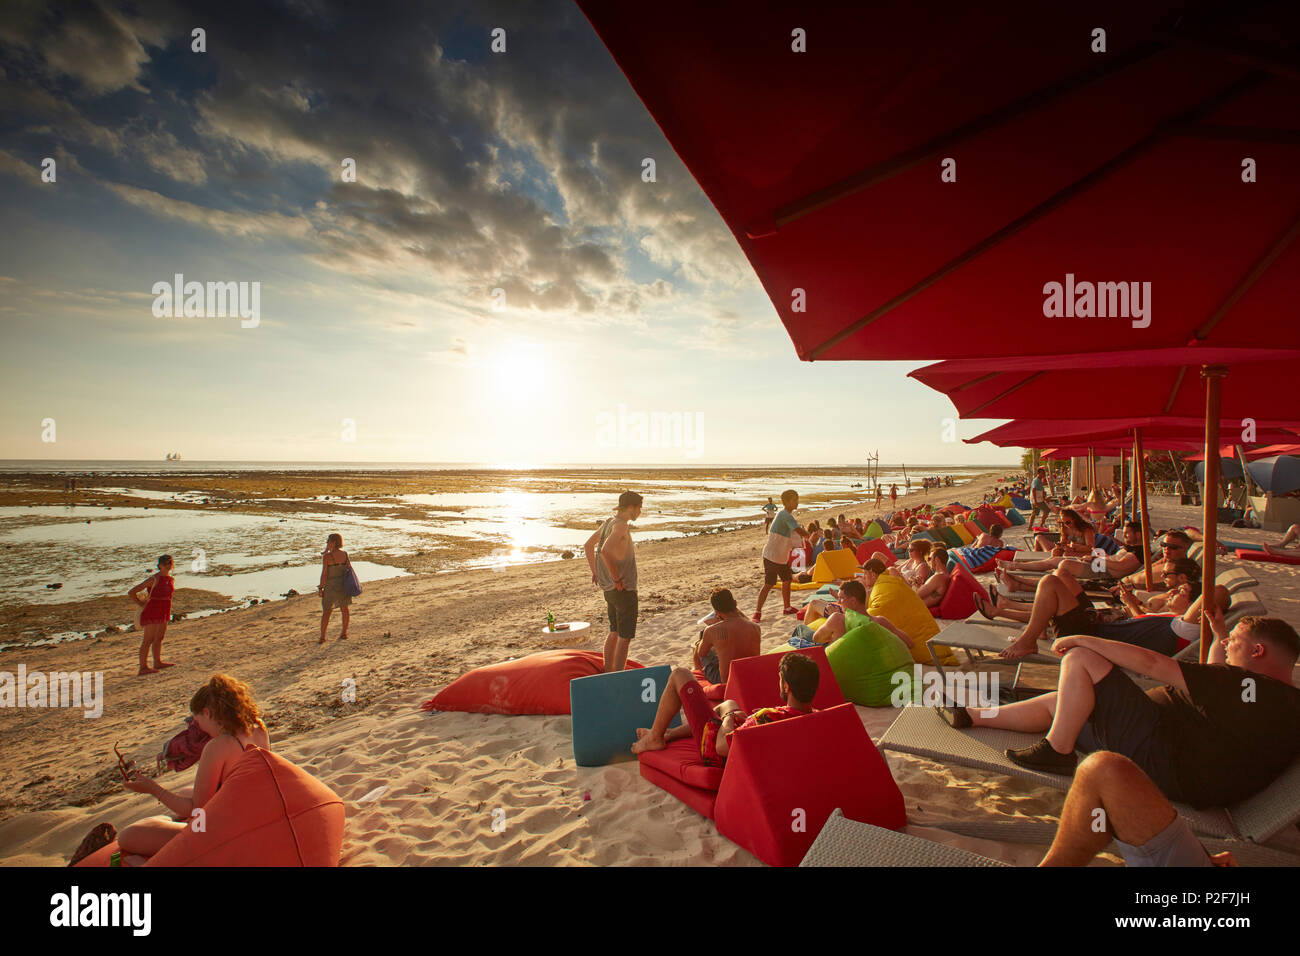 Guests in beach bar, Gili Trawangan, Lombok, Indonesia - Stock Image